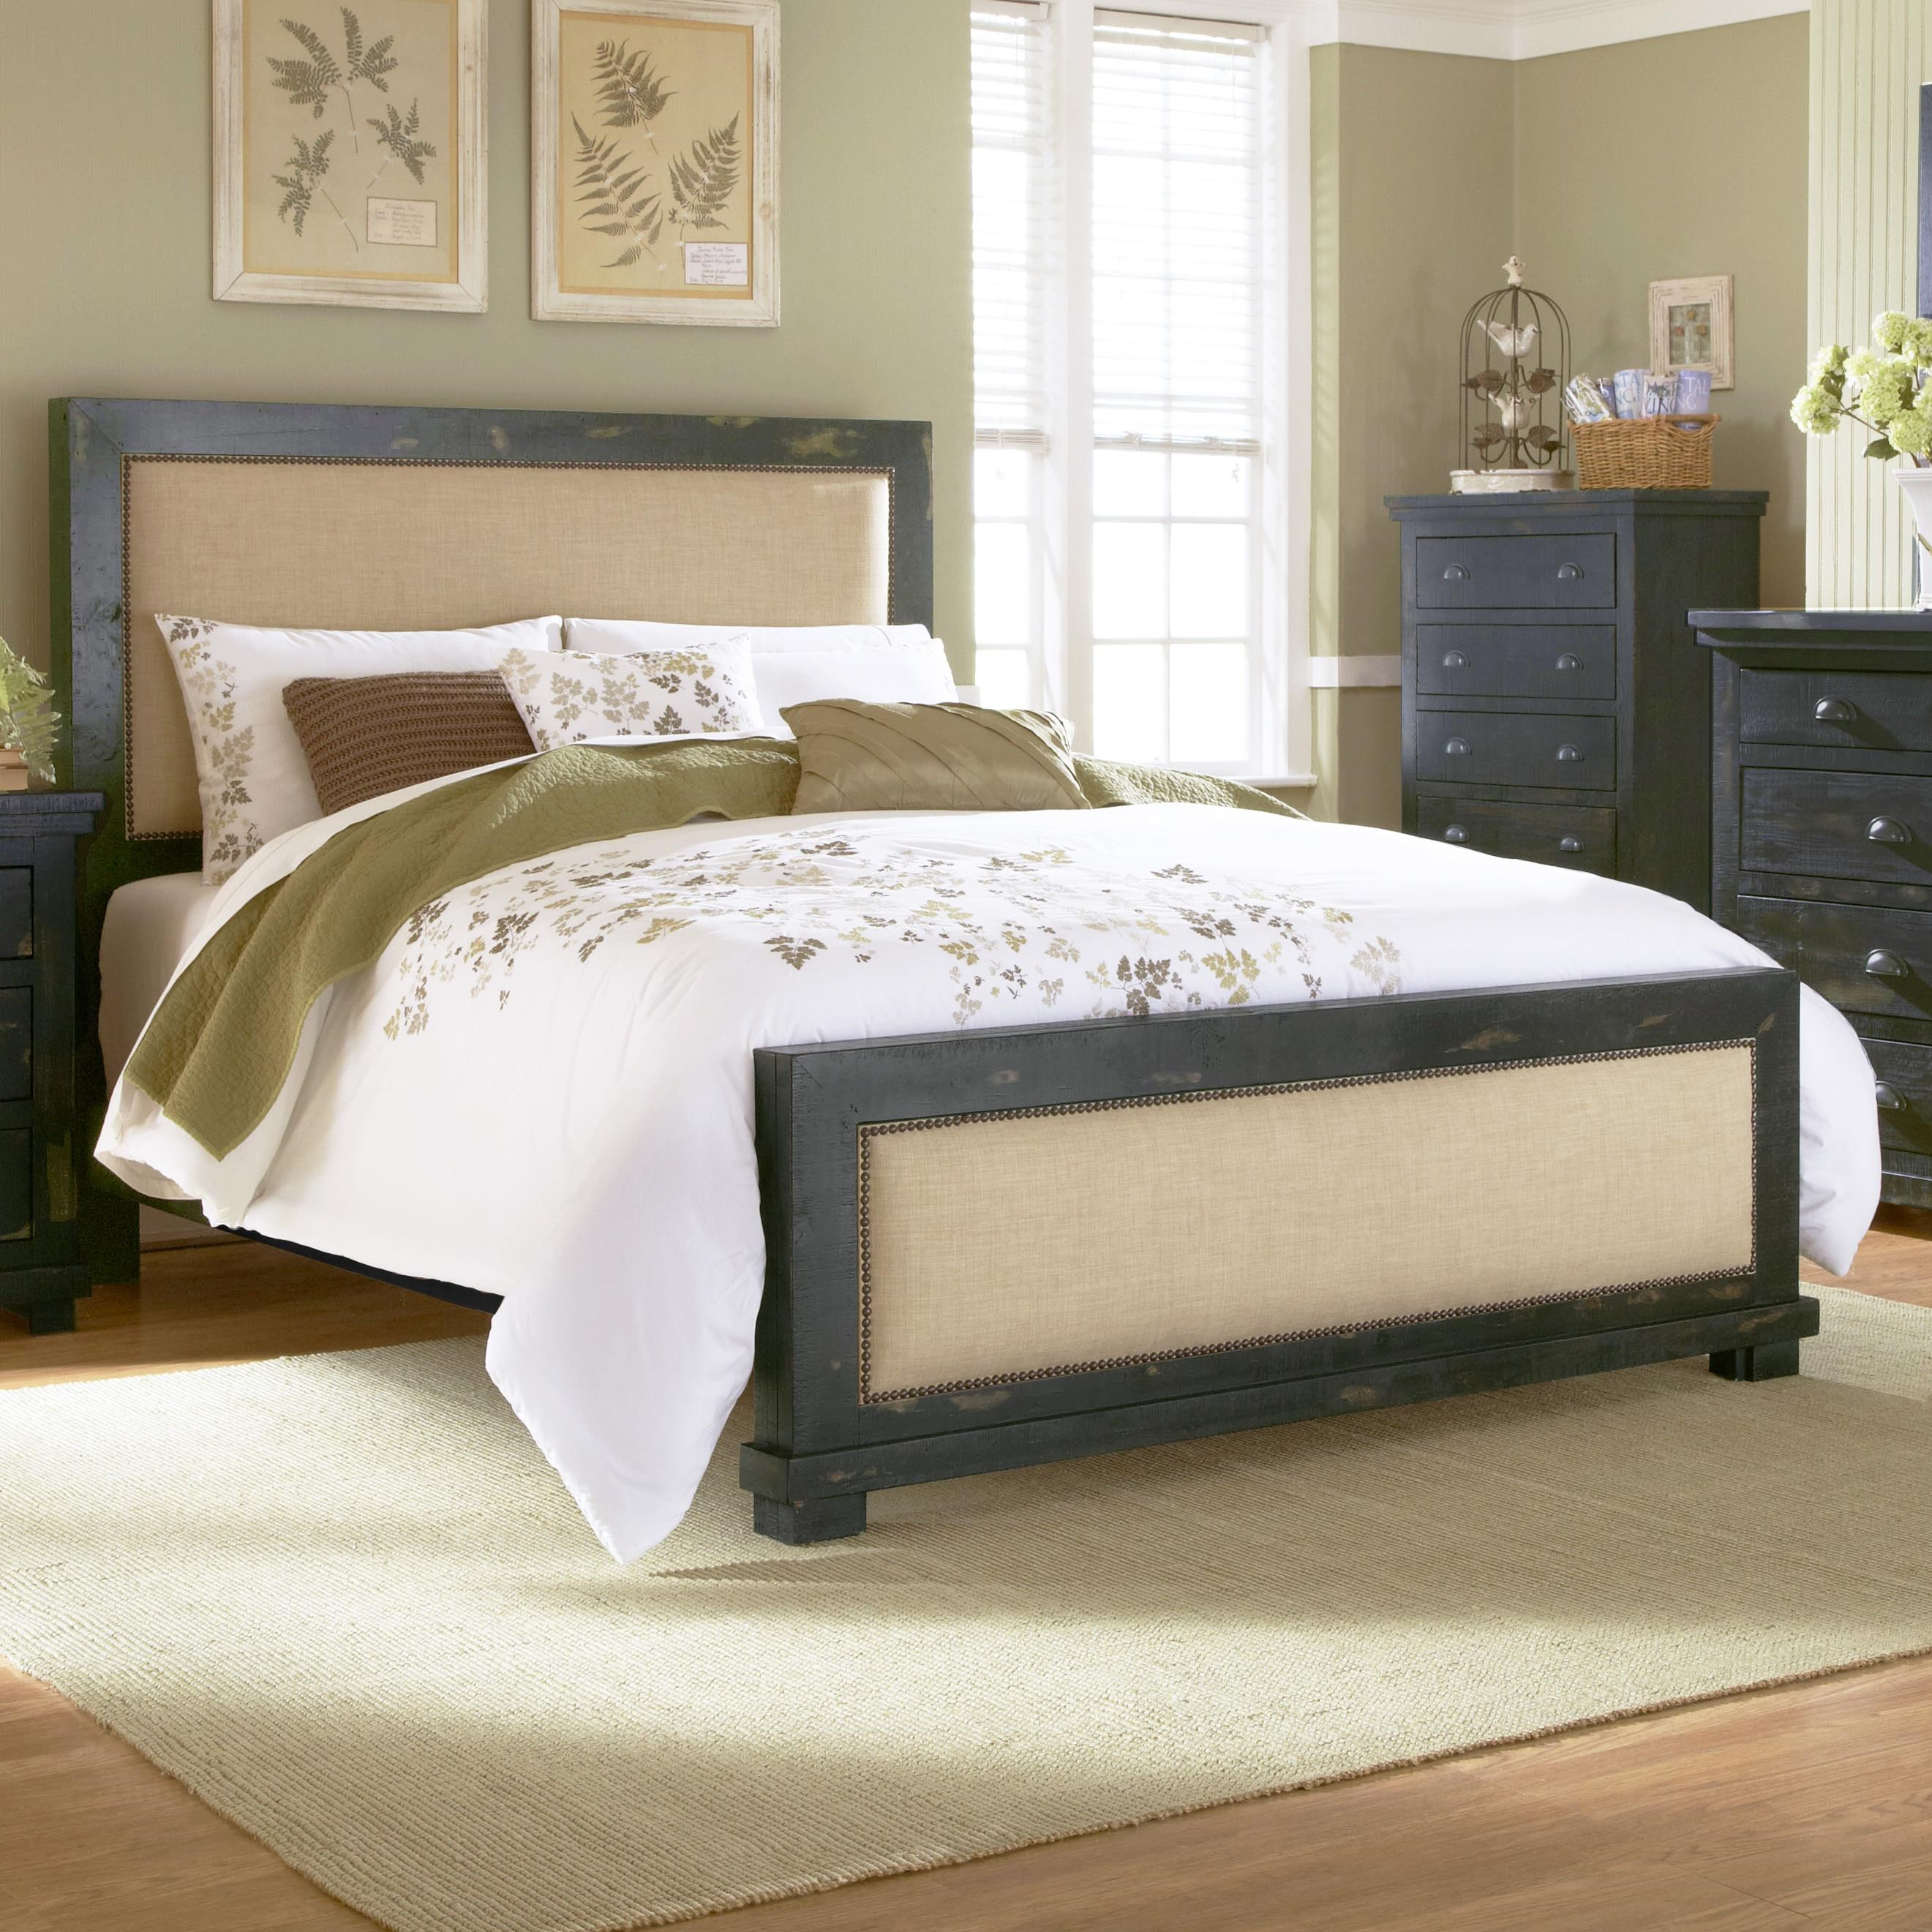 progressive furniture willow king upholstered bed with distressed pine frame